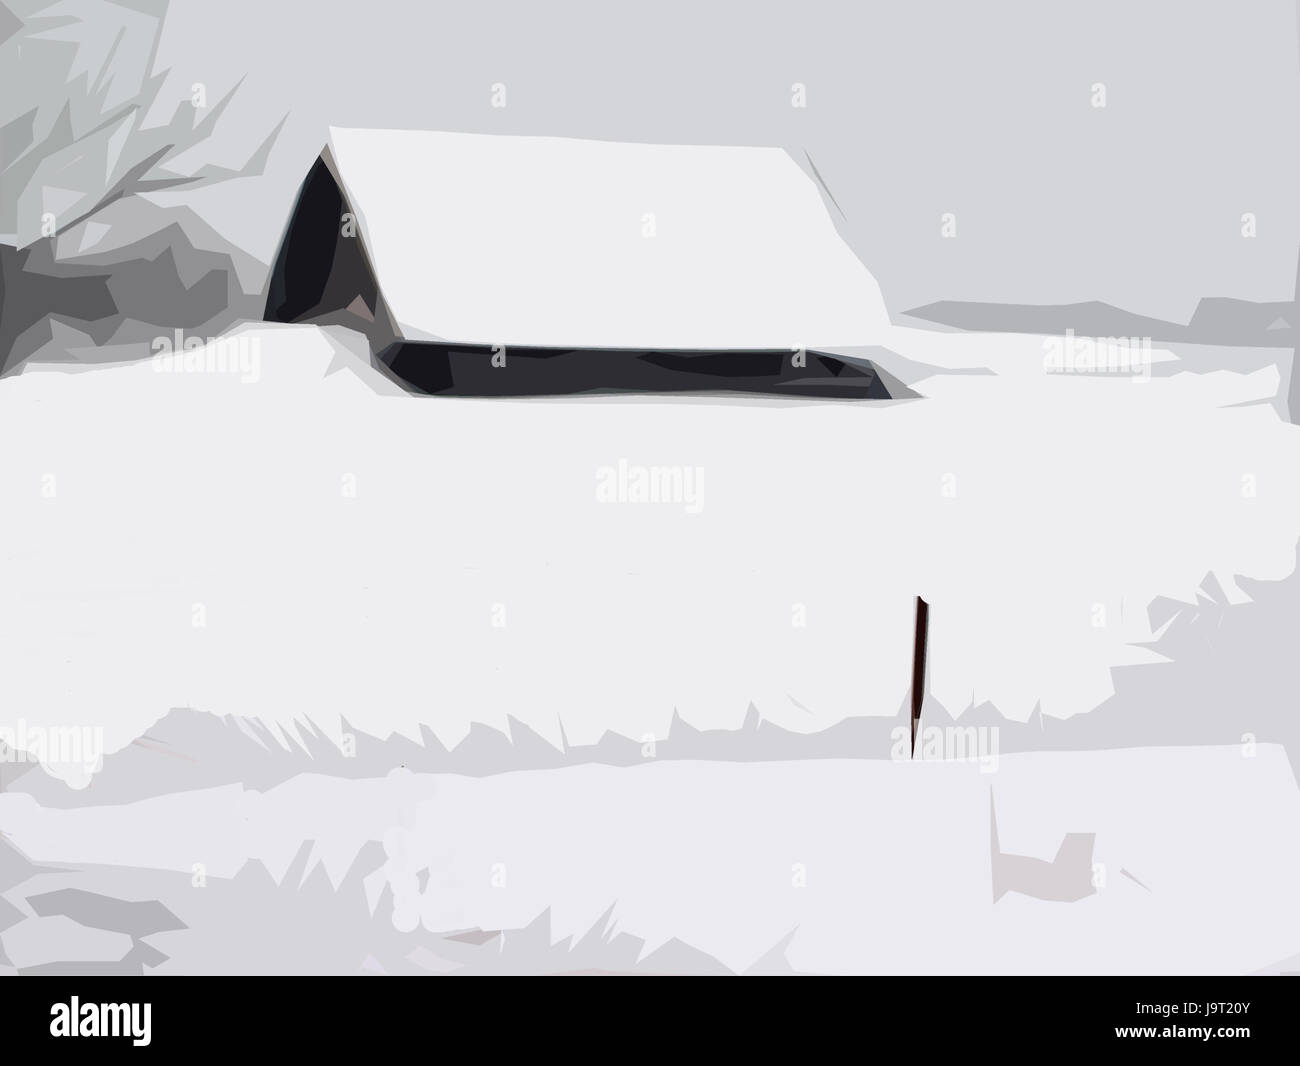 Illustration,winter scenery,steelworks,s/w,[M],computer graphics,kind,makes unfamiliar,scenery,rurally,house,barn,snowbound,snow - Stock Image